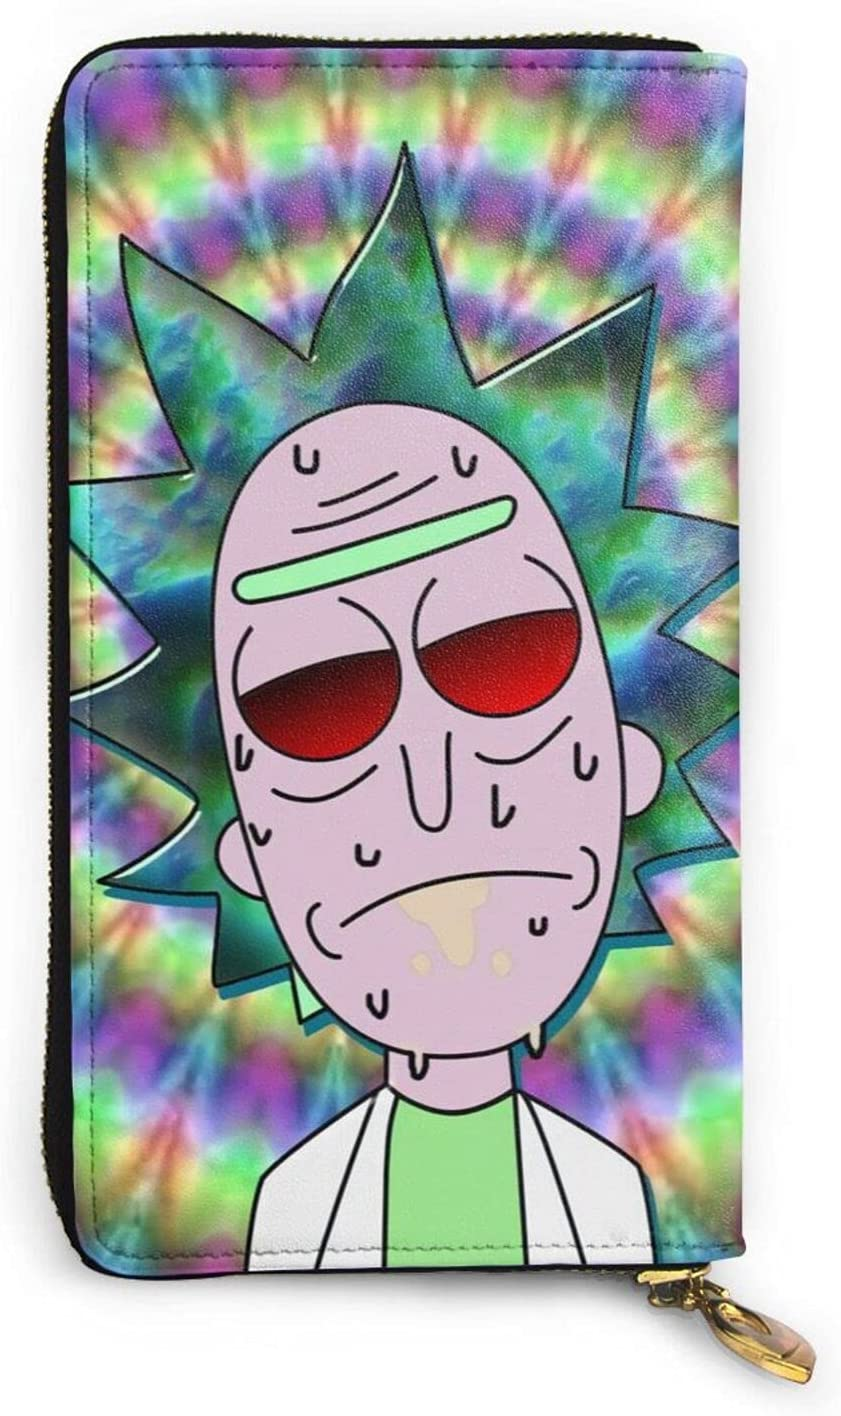 Rick Morty Wallet Cartoon Anime Women New sales Men Our shop most popular Leather Fashion